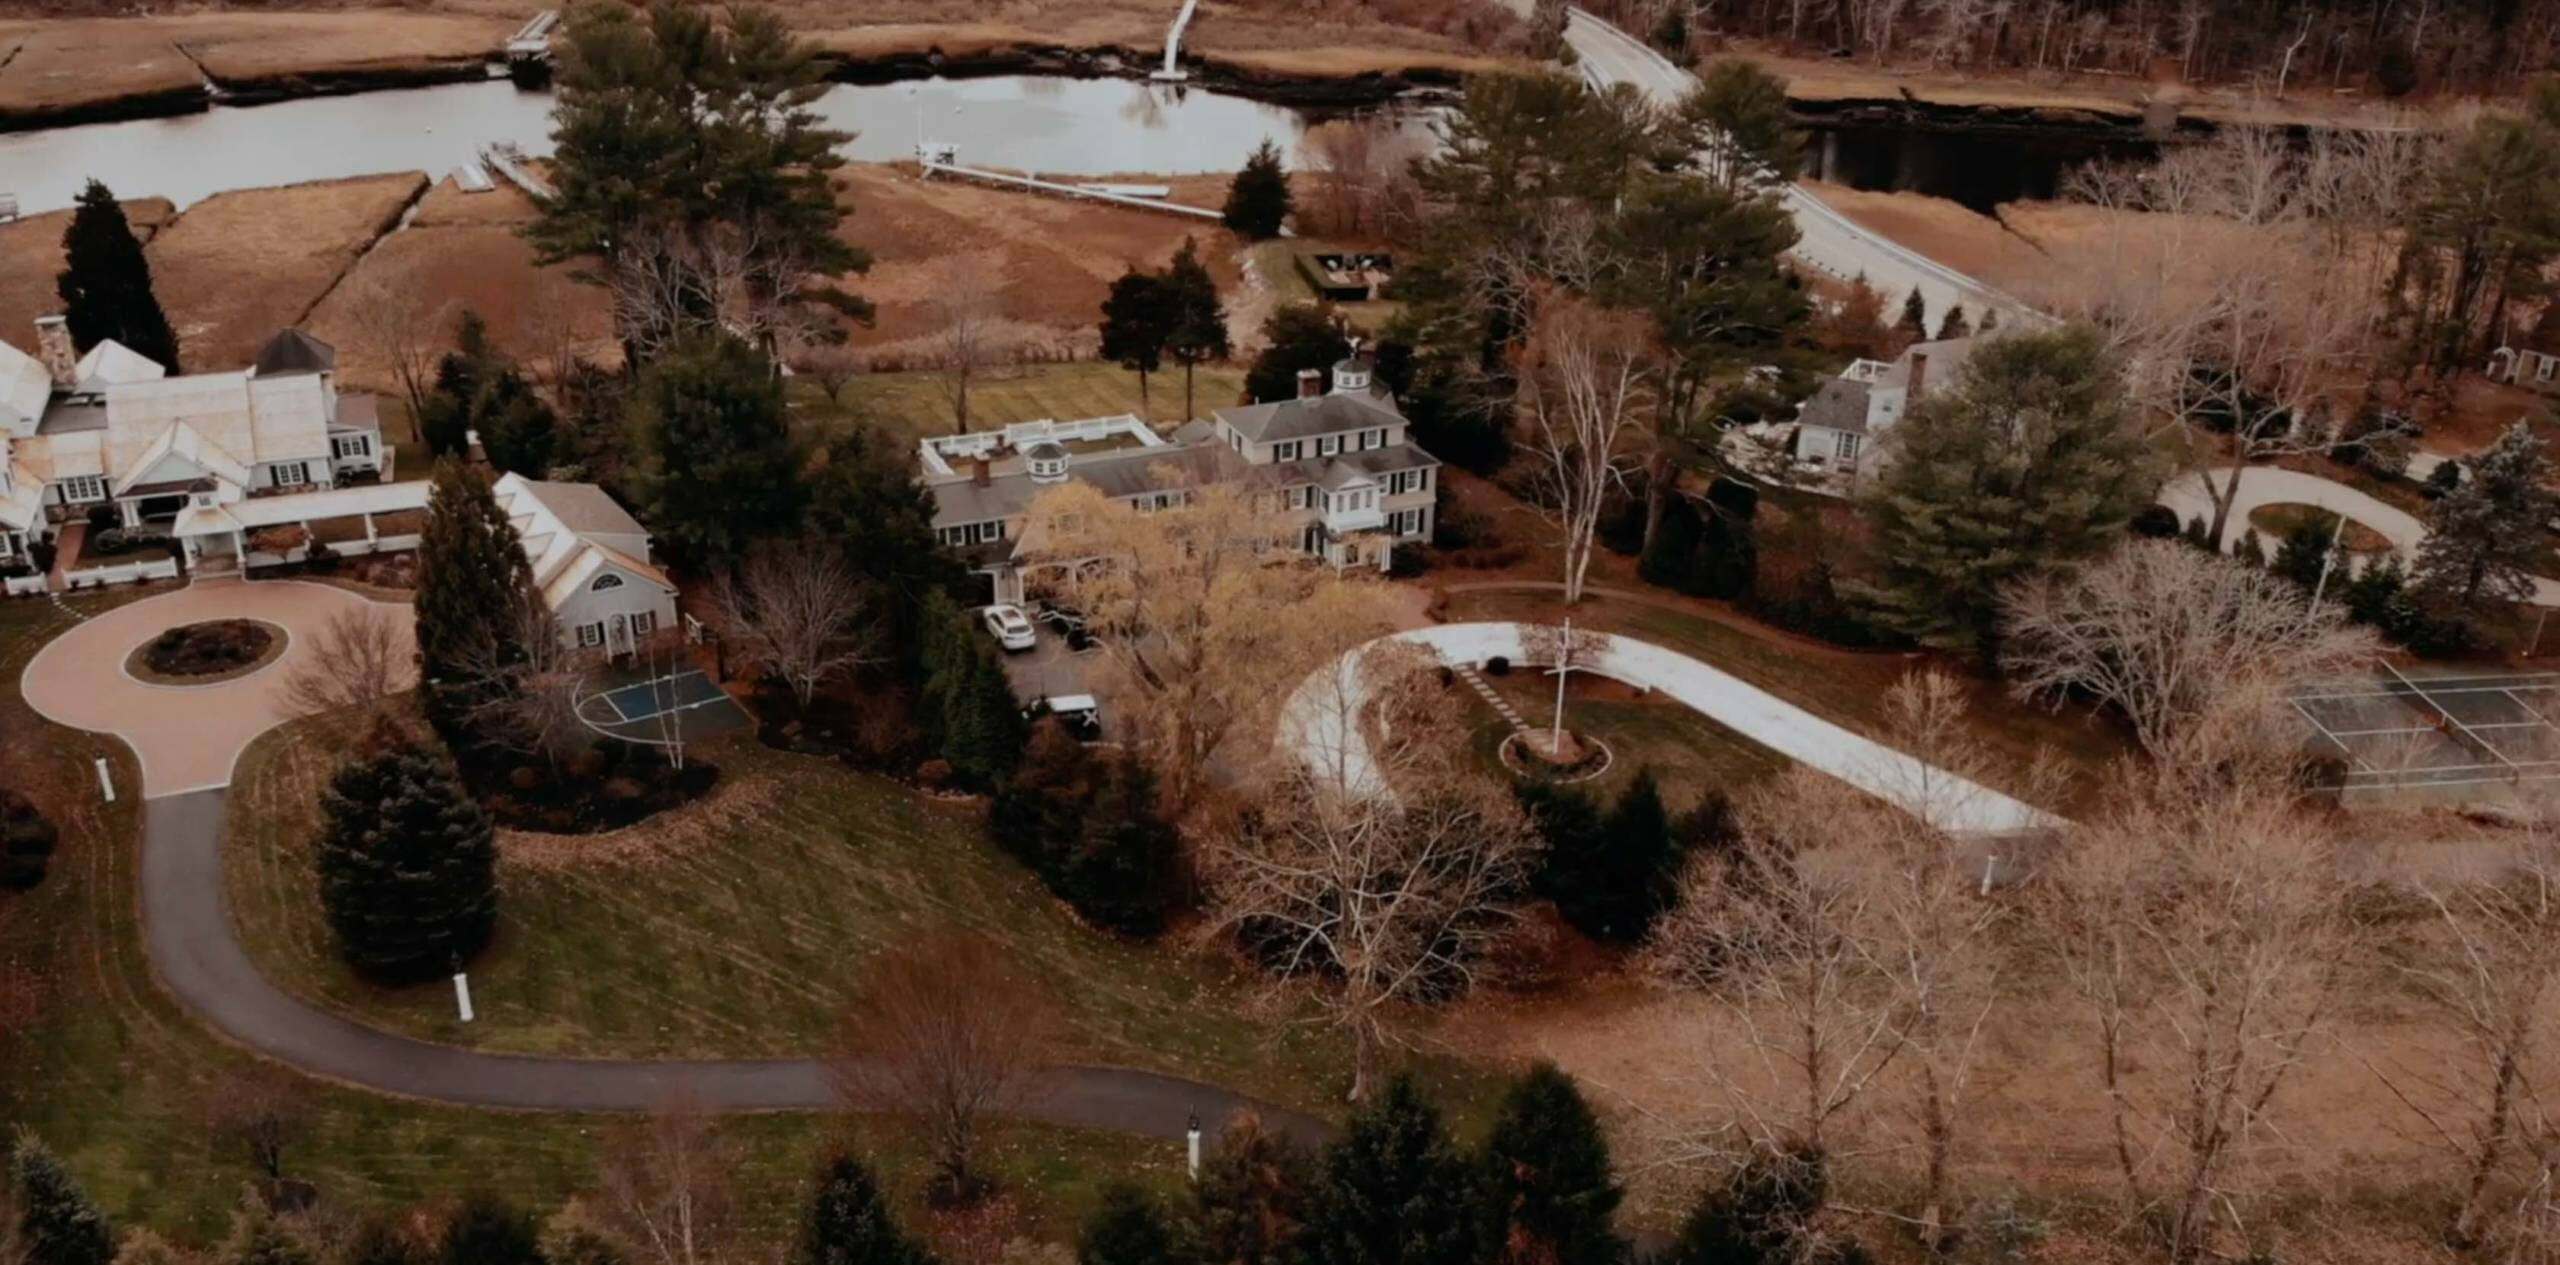 An aerial view of a residential home.